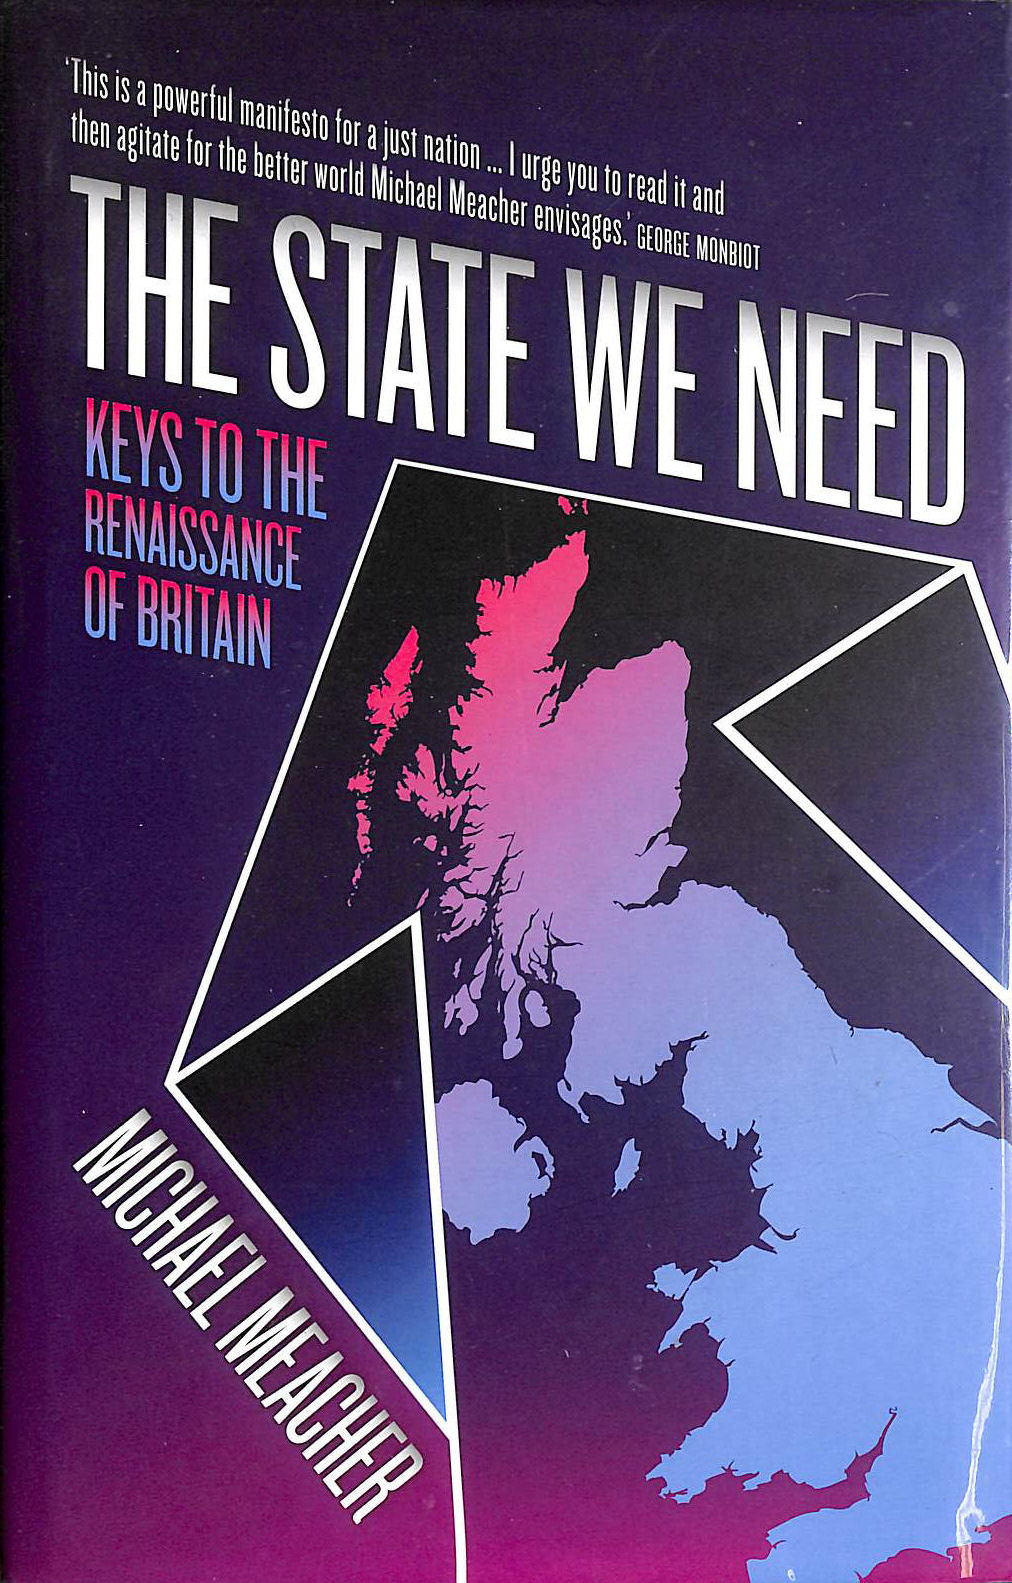 Image for The State We Need: Keys to the Renaissance of Britain